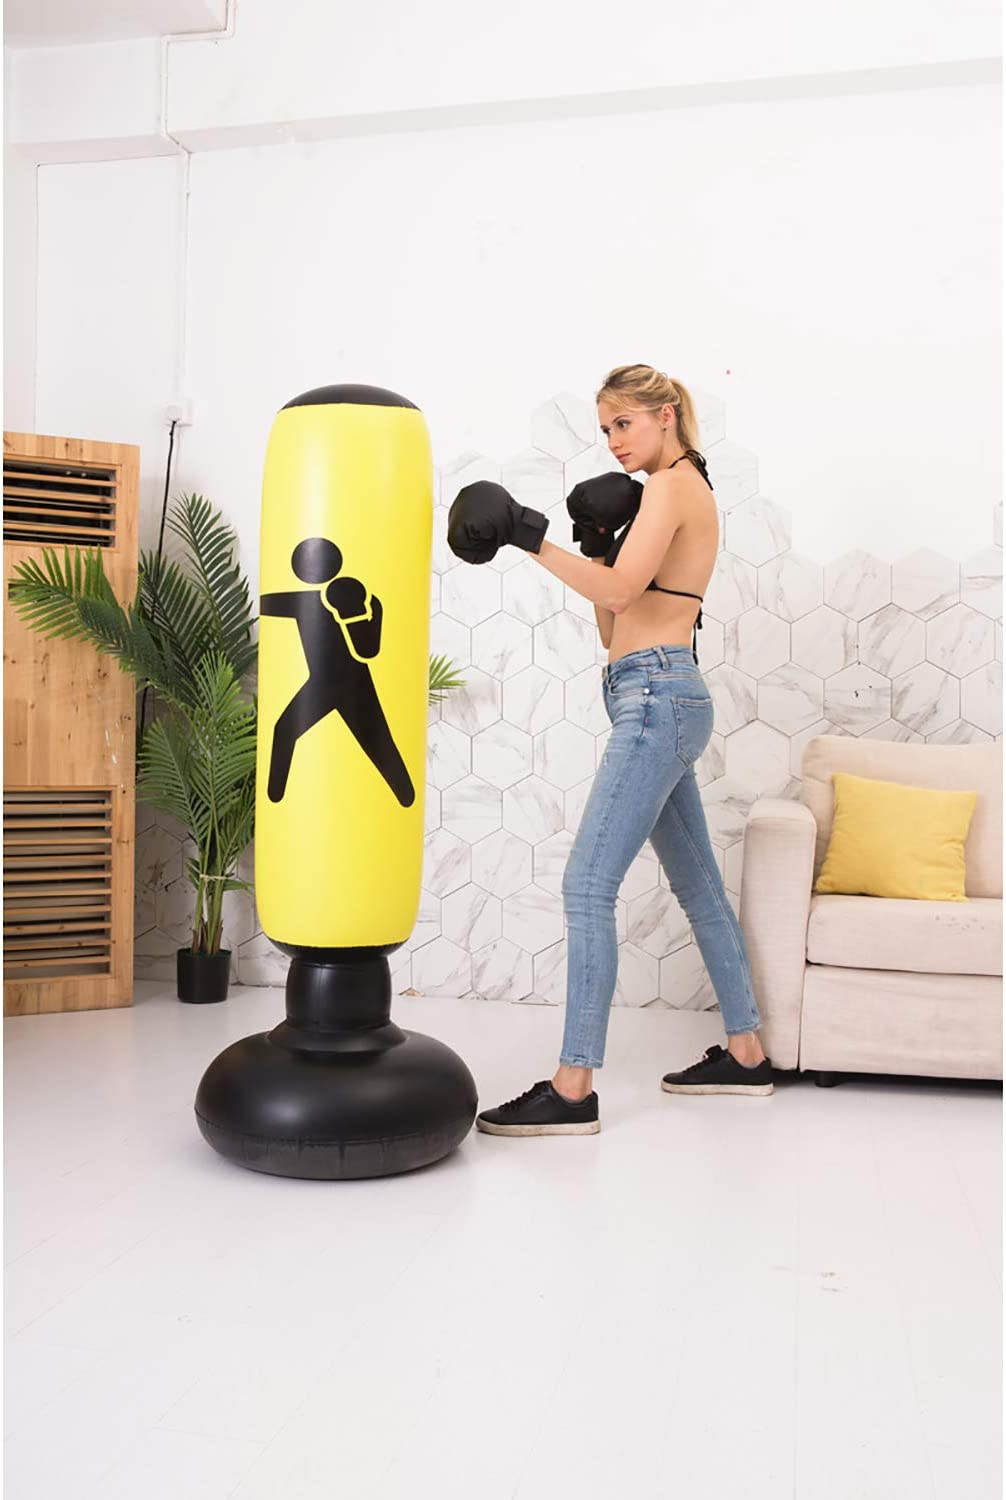 BOOMGROO Inflatable Punching Body Bag with Stand, Boxing Bag Toy Boxing Stand Heavy Bag Stand Strength Enhancer Boxing Toy for Kids Youth Teenager Junior & Adults Boom Boom Boxing (Yellow) : Sports & Outdoors